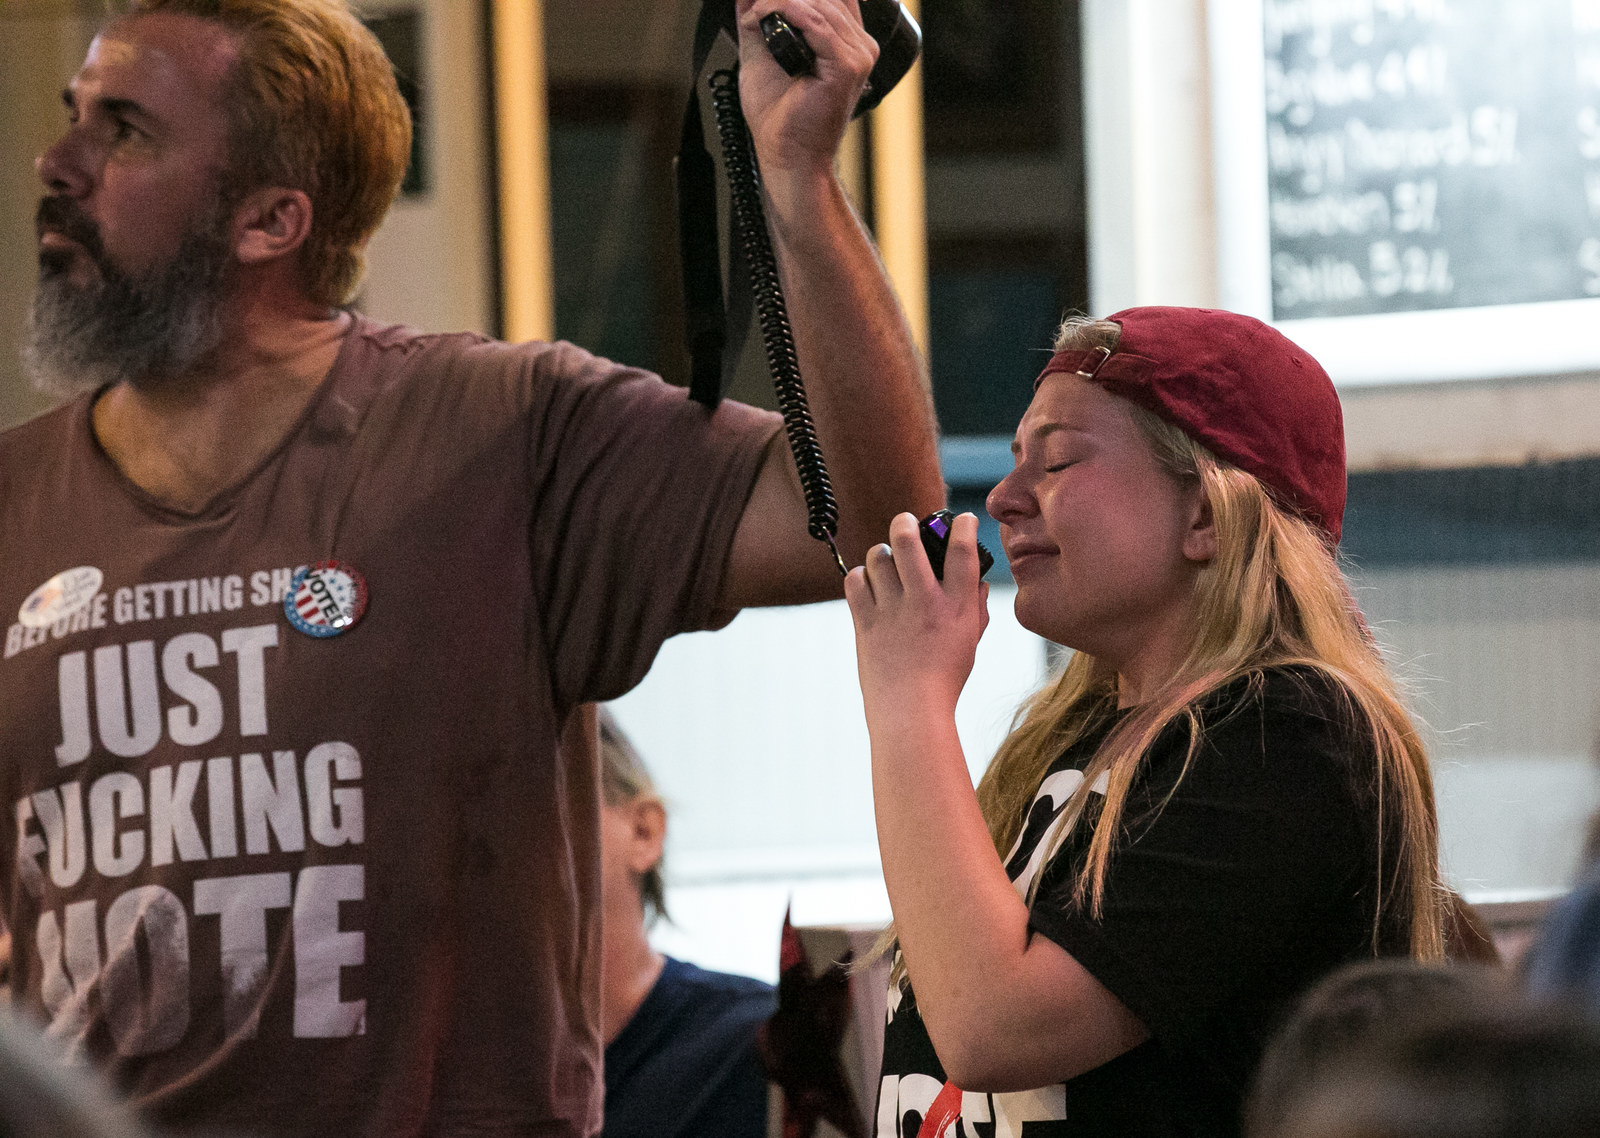 The Parkland Activists Began Midterm Election Day Hopeful. The Night Ended In Tears.